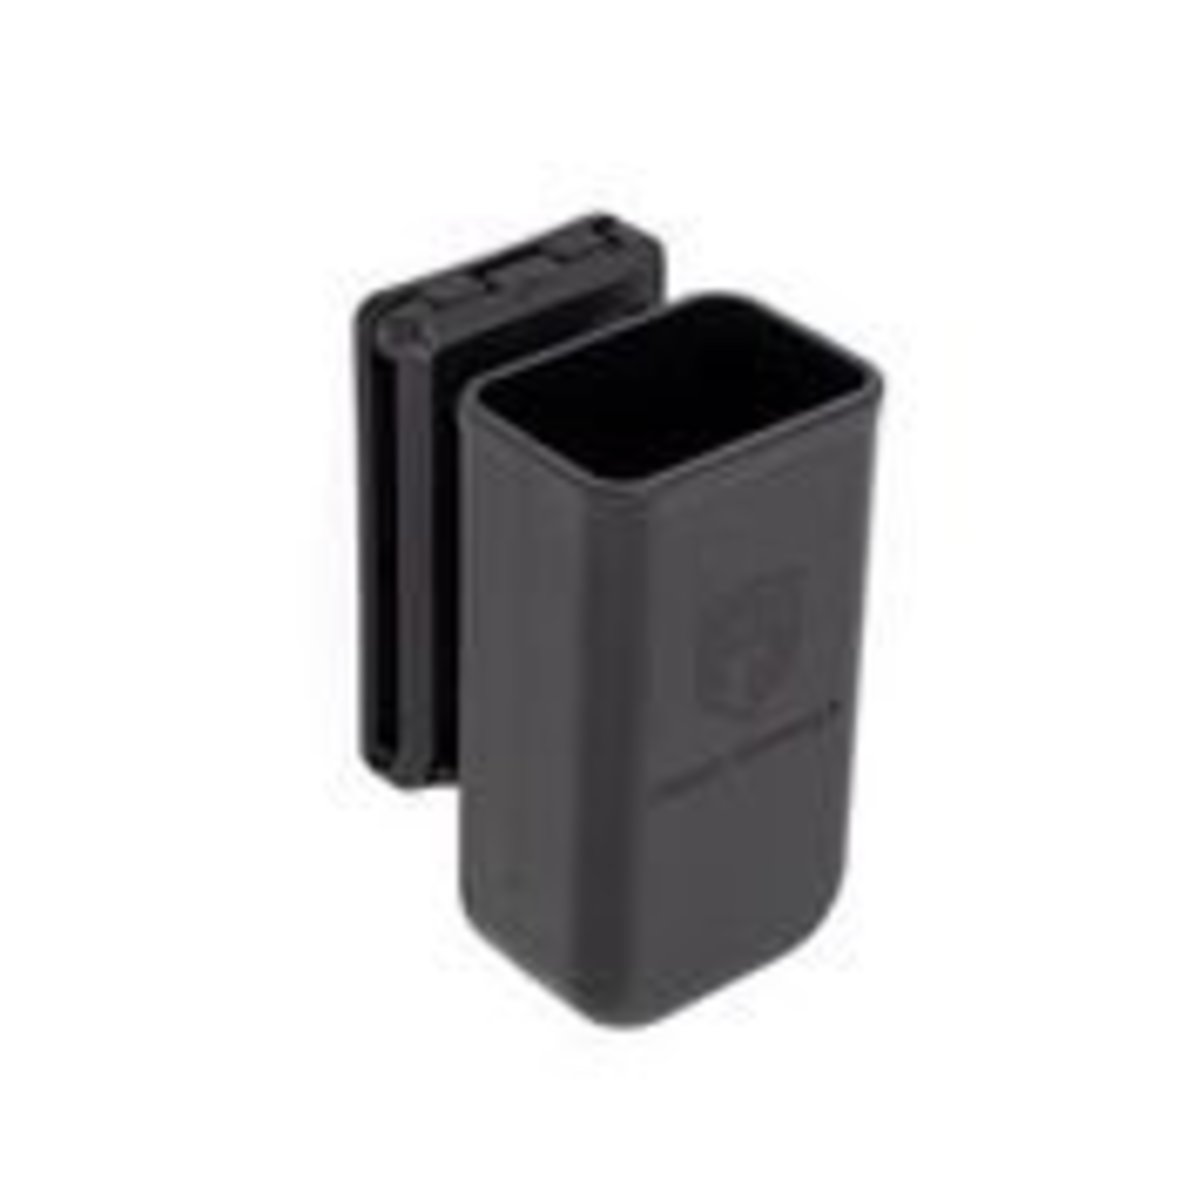 View larger image of First Strike Compact Molded Single Magazine Pouch